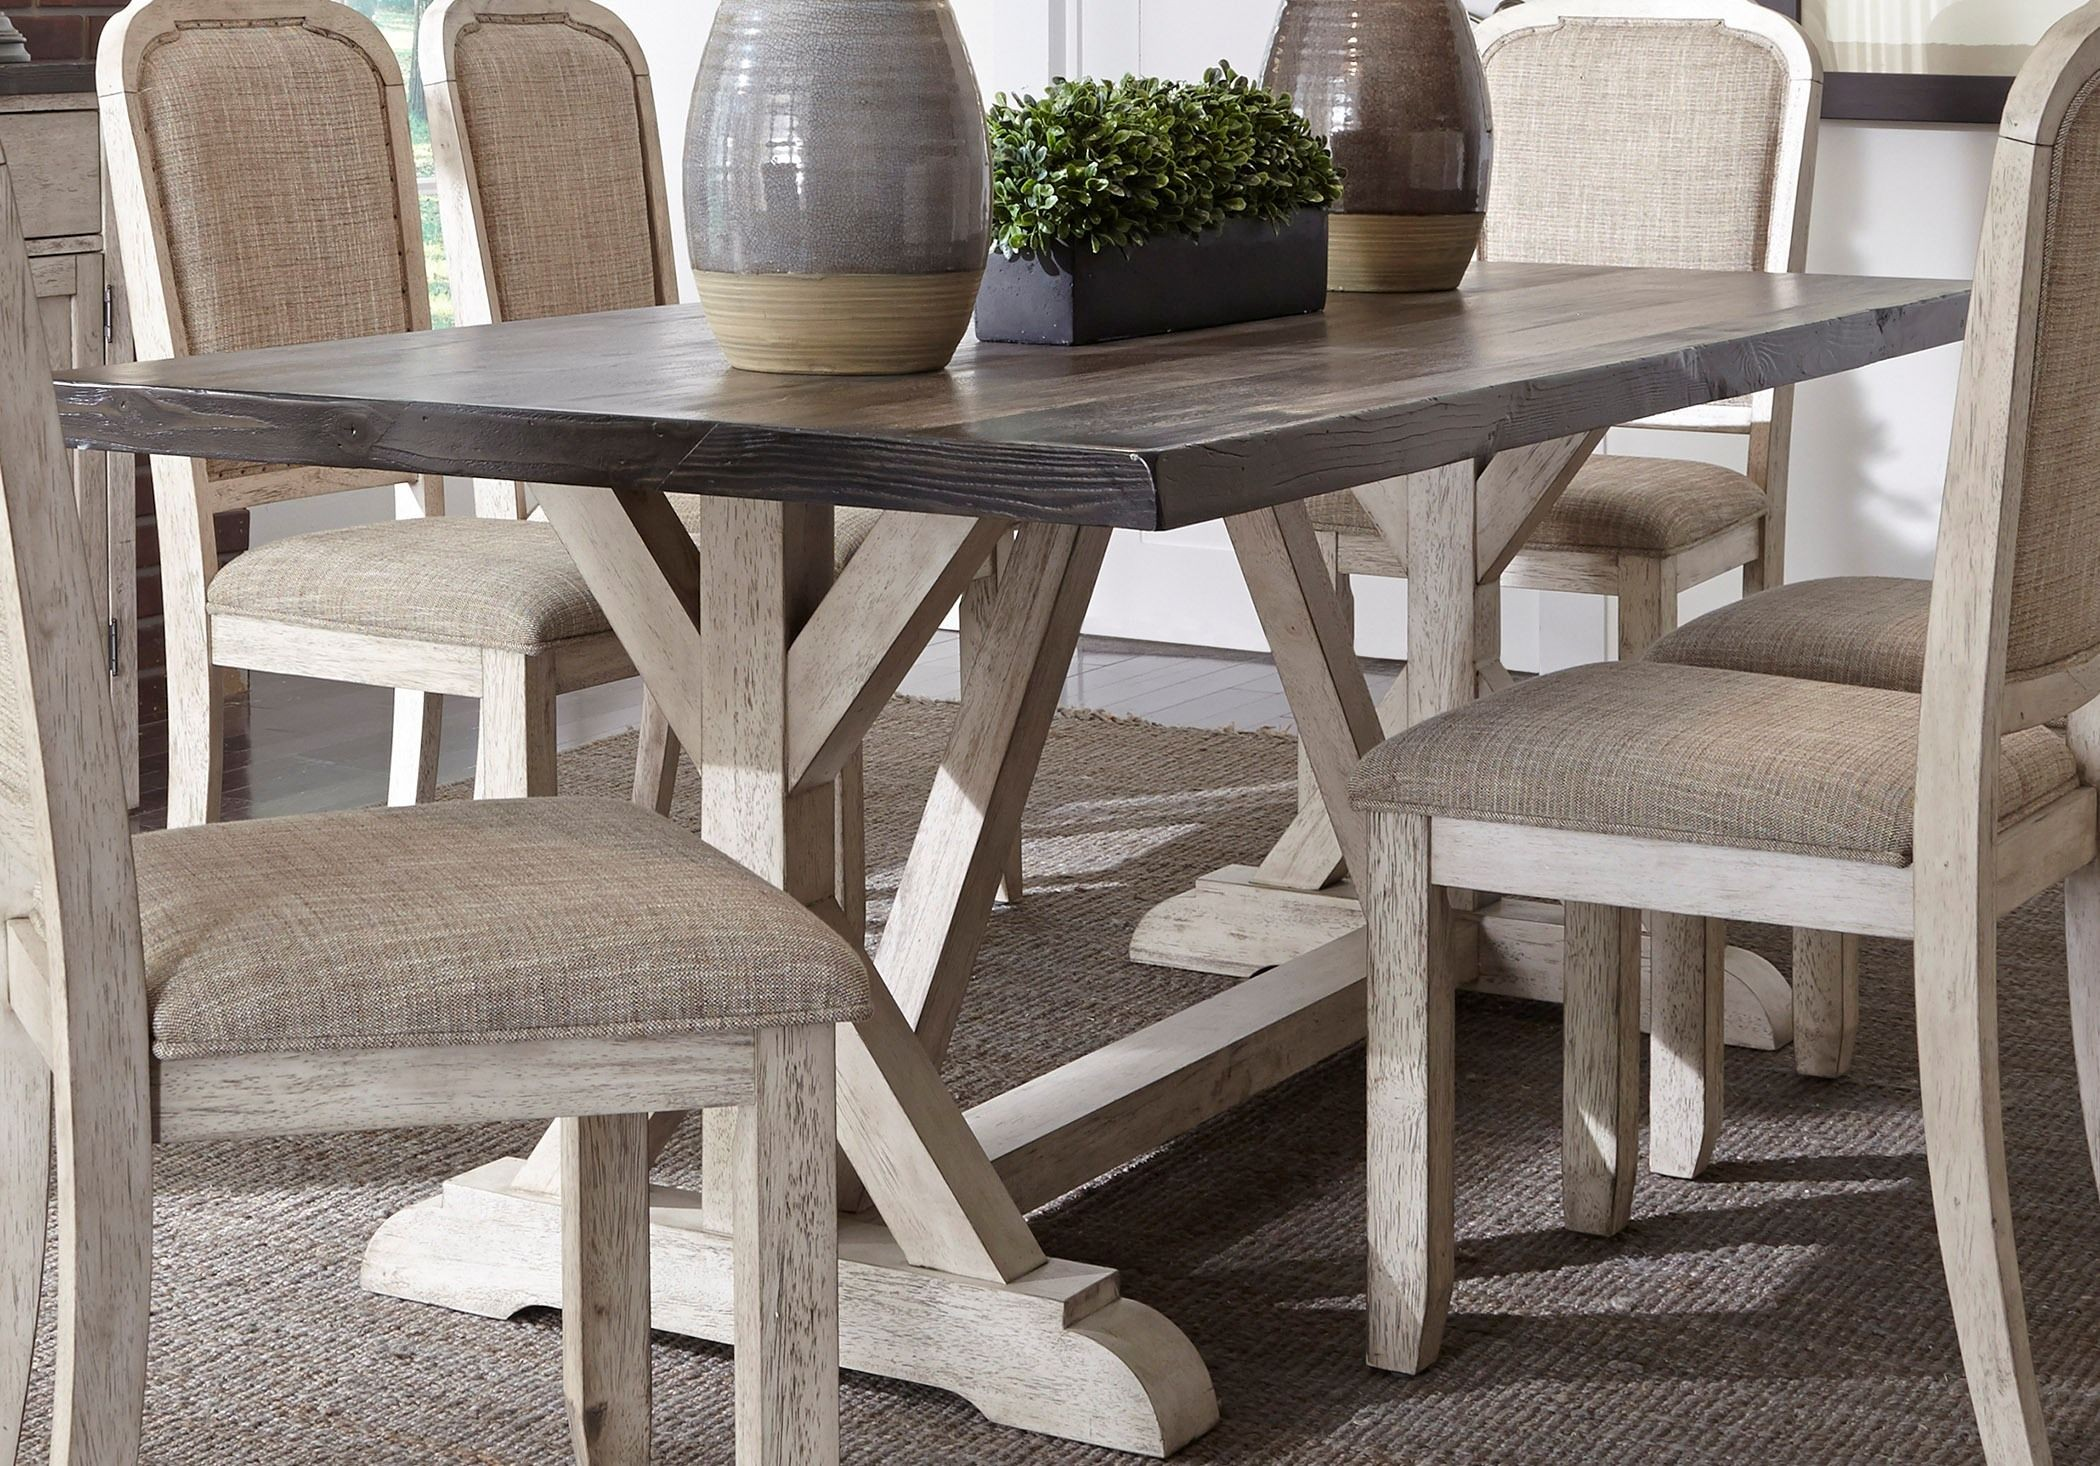 Willowrun Rustic White Trestle Dining Table From Liberty